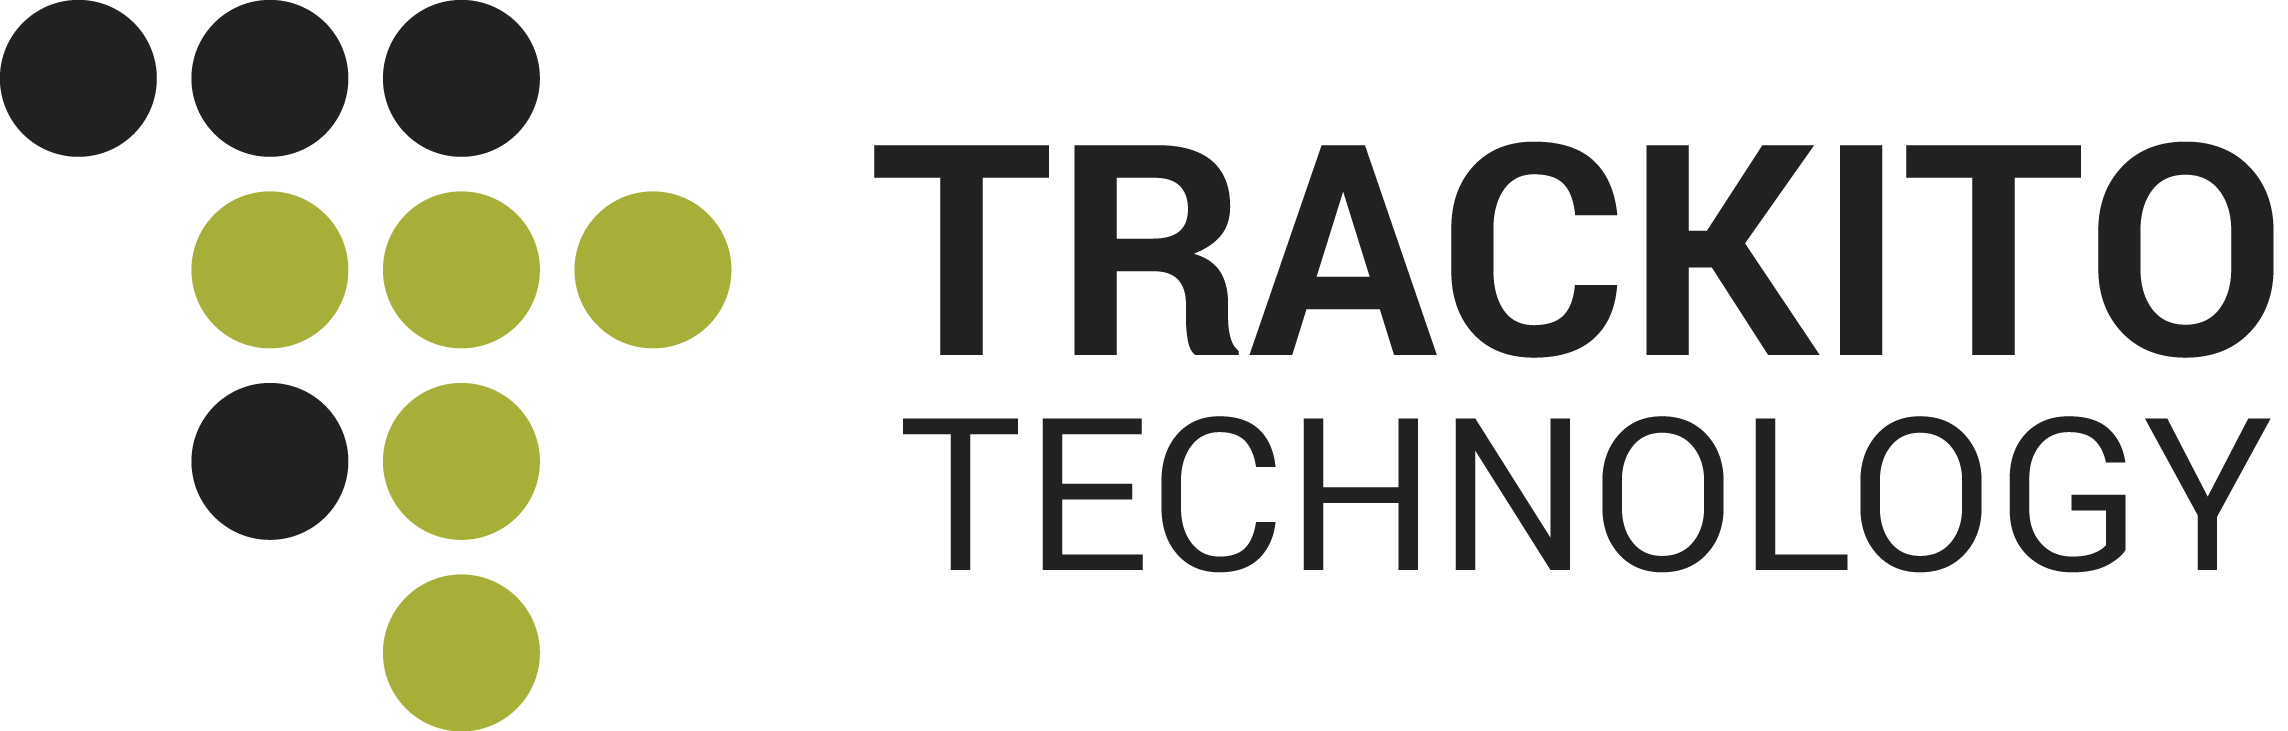 Contacts :: Trackito Technology E-shop